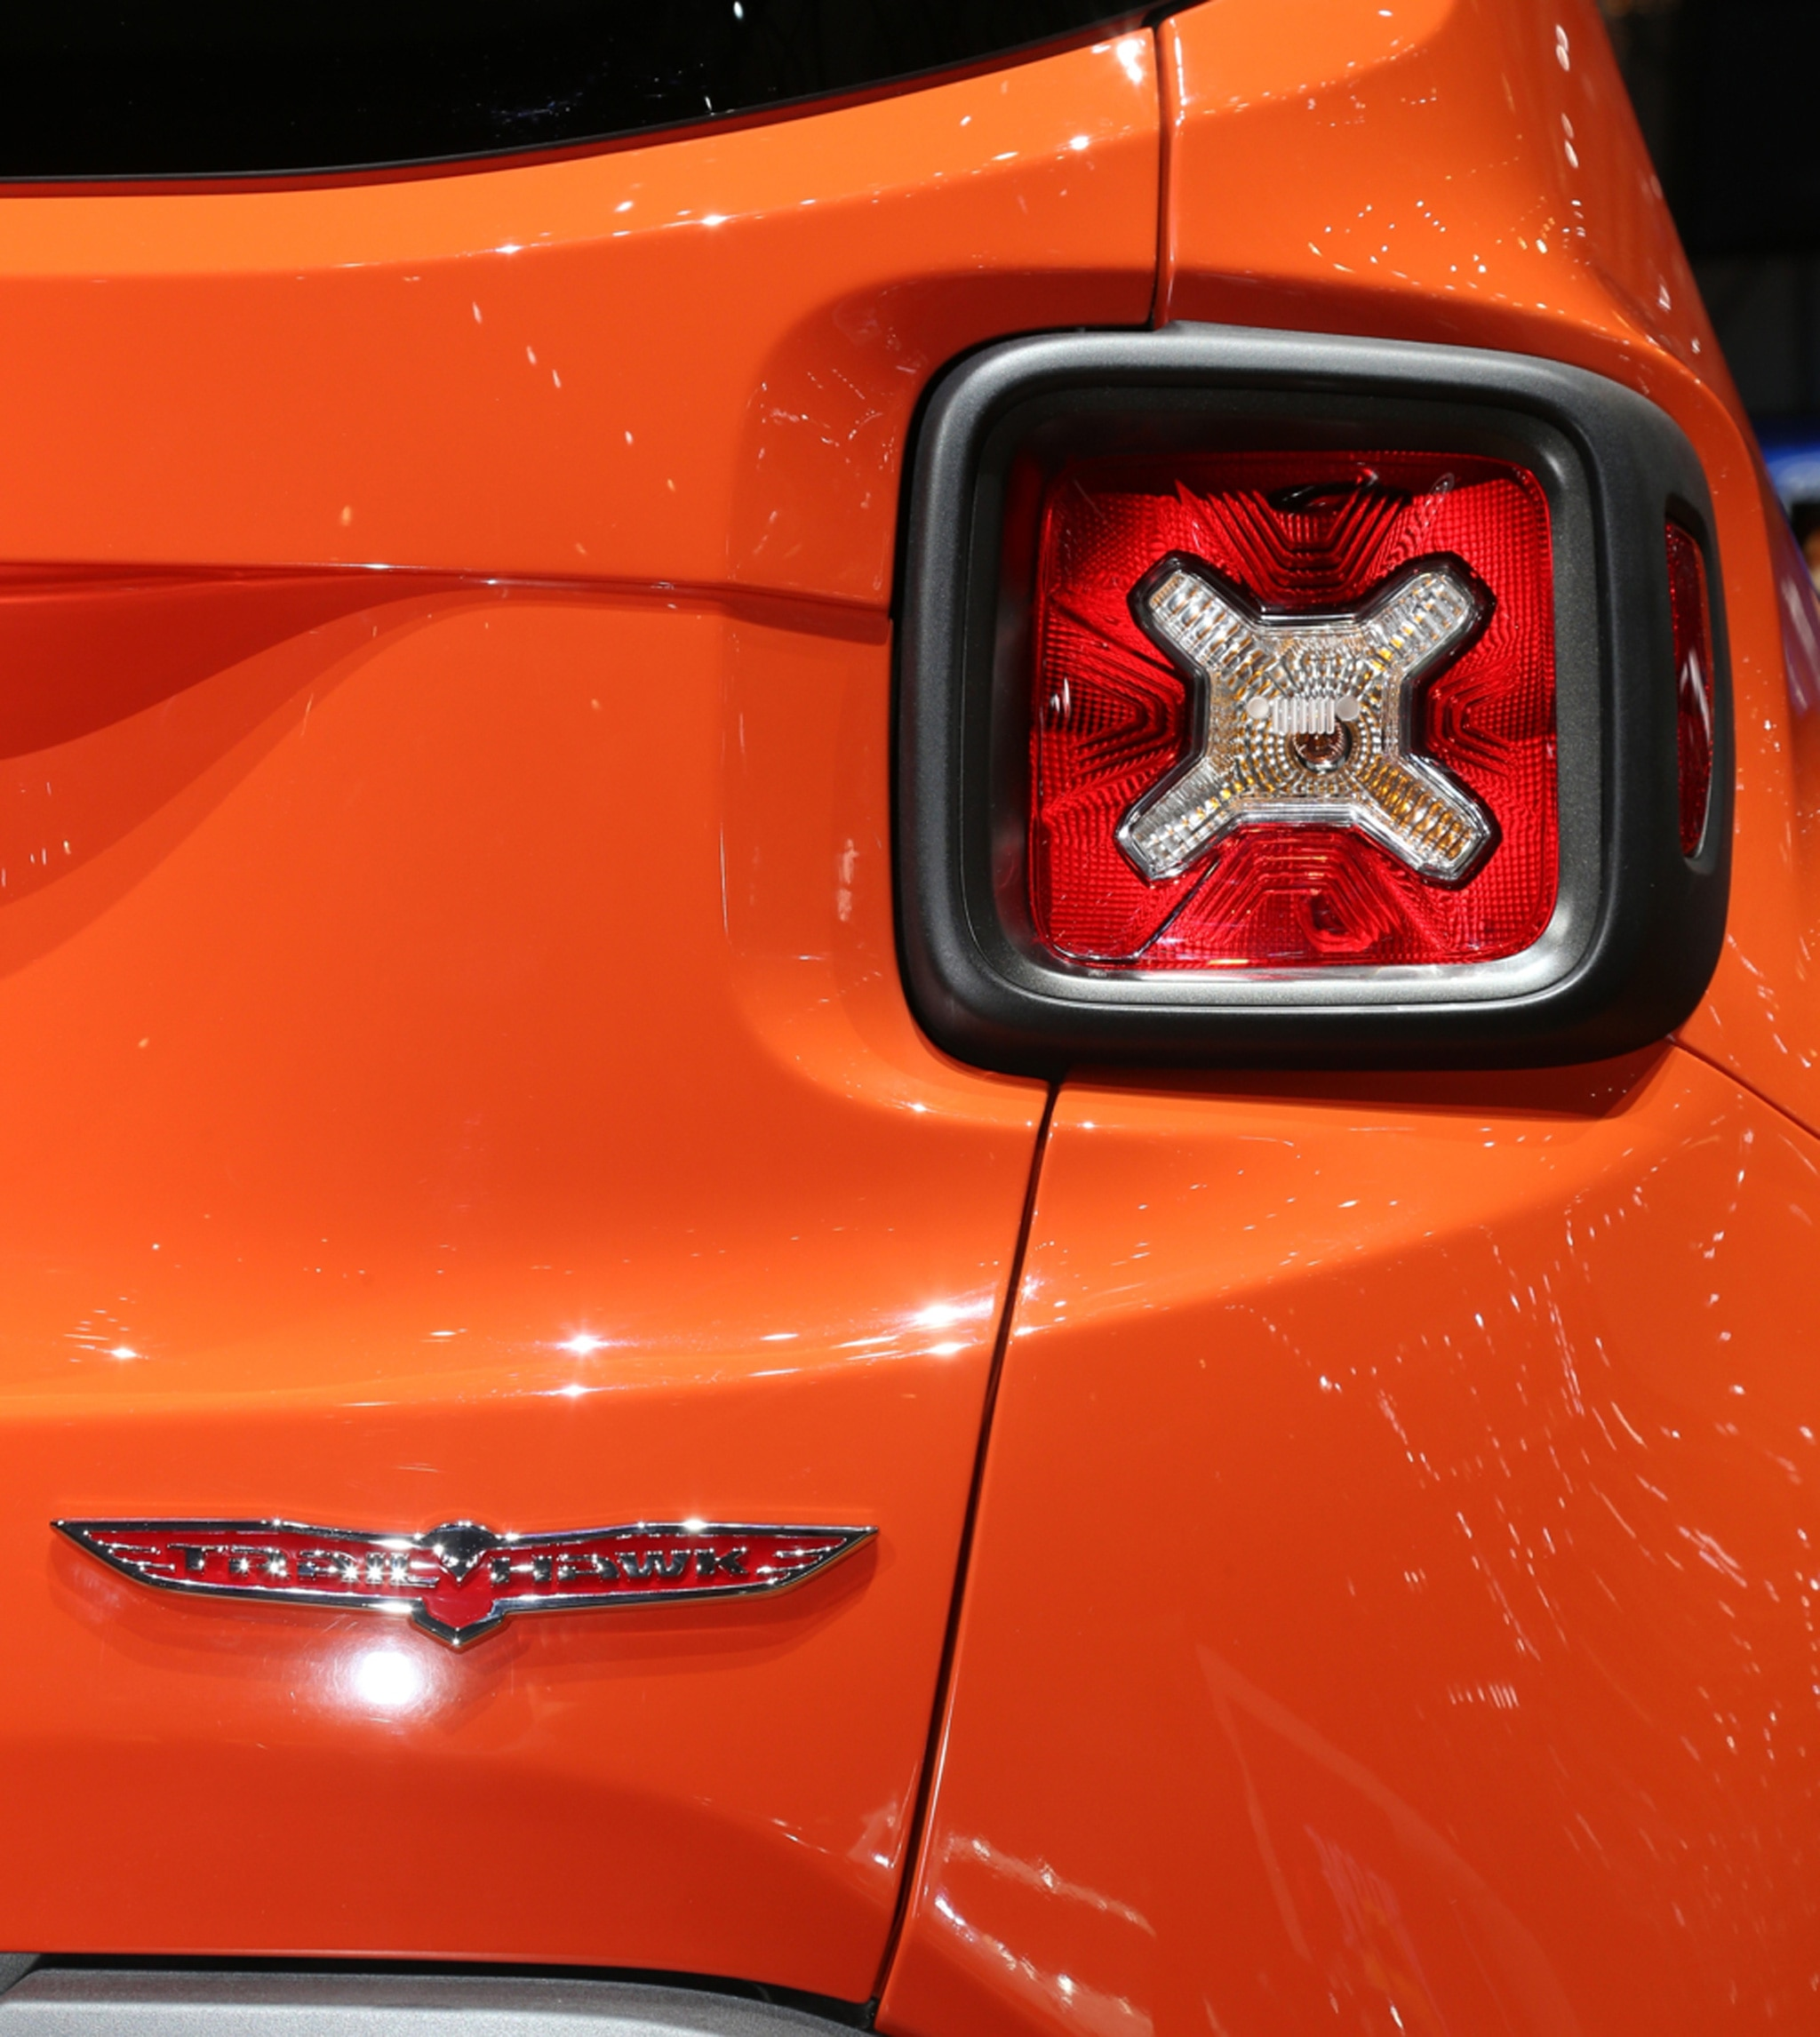 2015 Jeep Renegade Trailhawk show floor Trailhawk badge and taillight